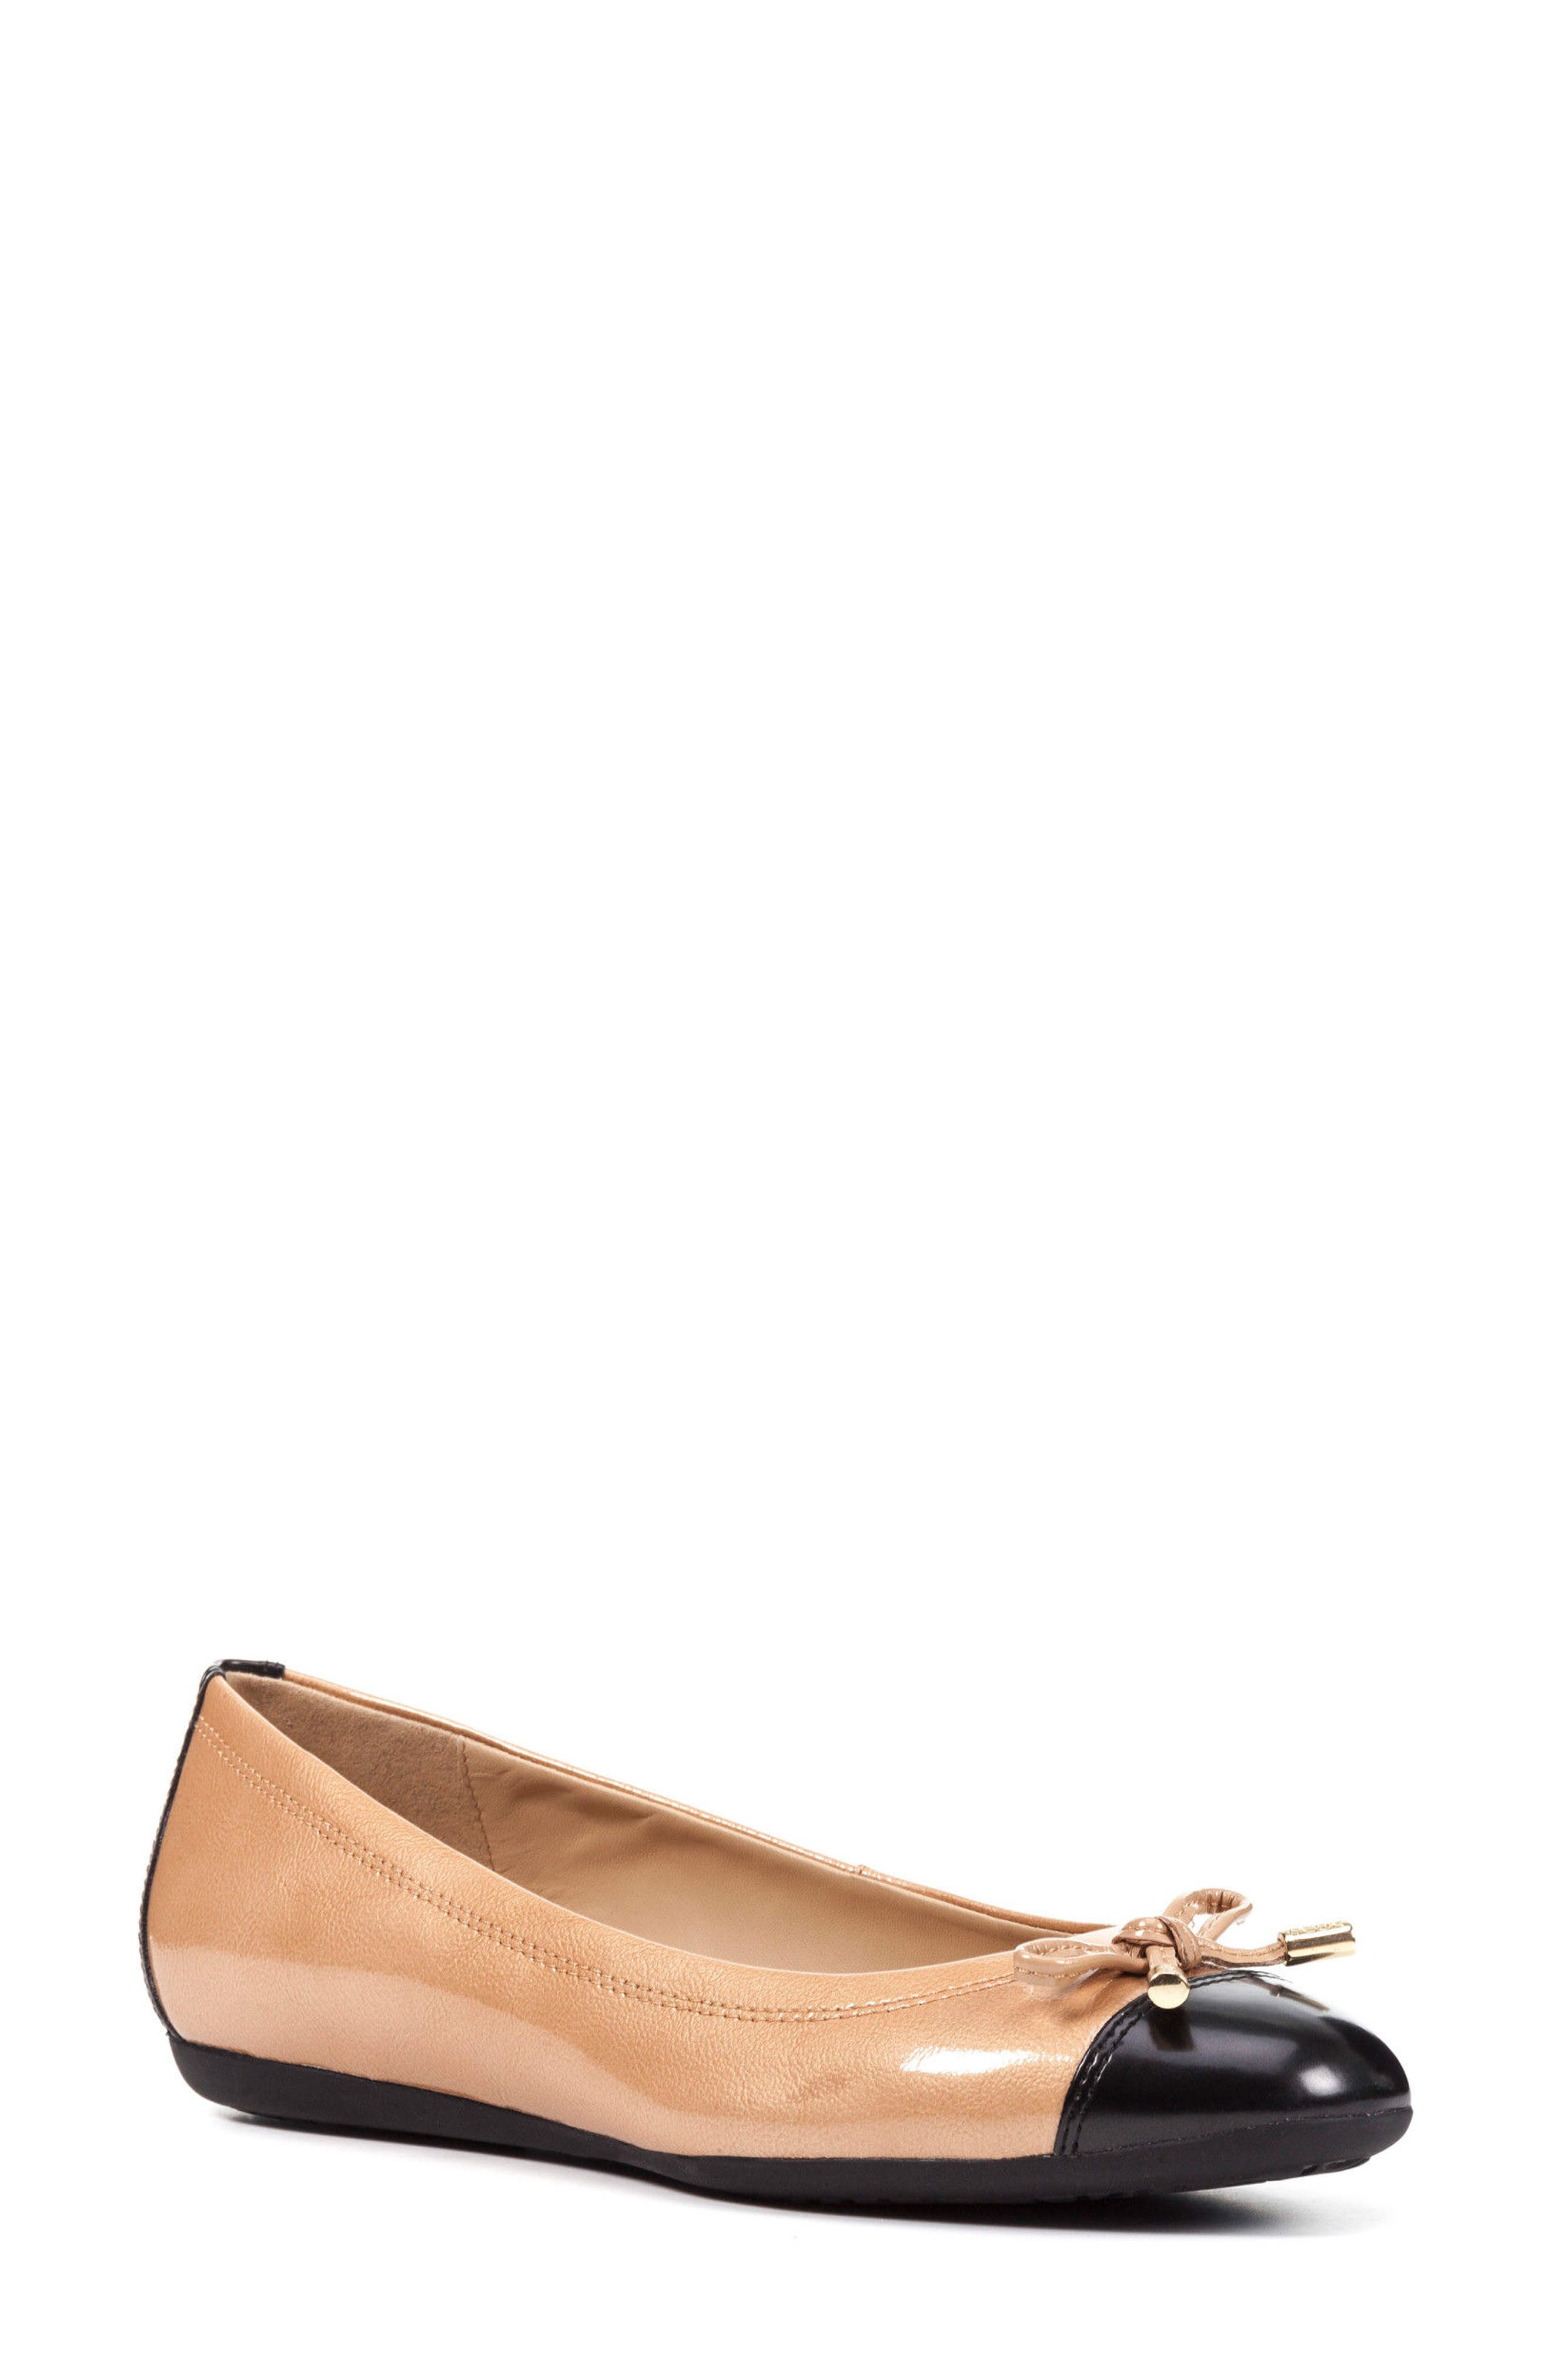 Lola Water Resistant Flat,                             Main thumbnail 1, color,                             Camel Leather